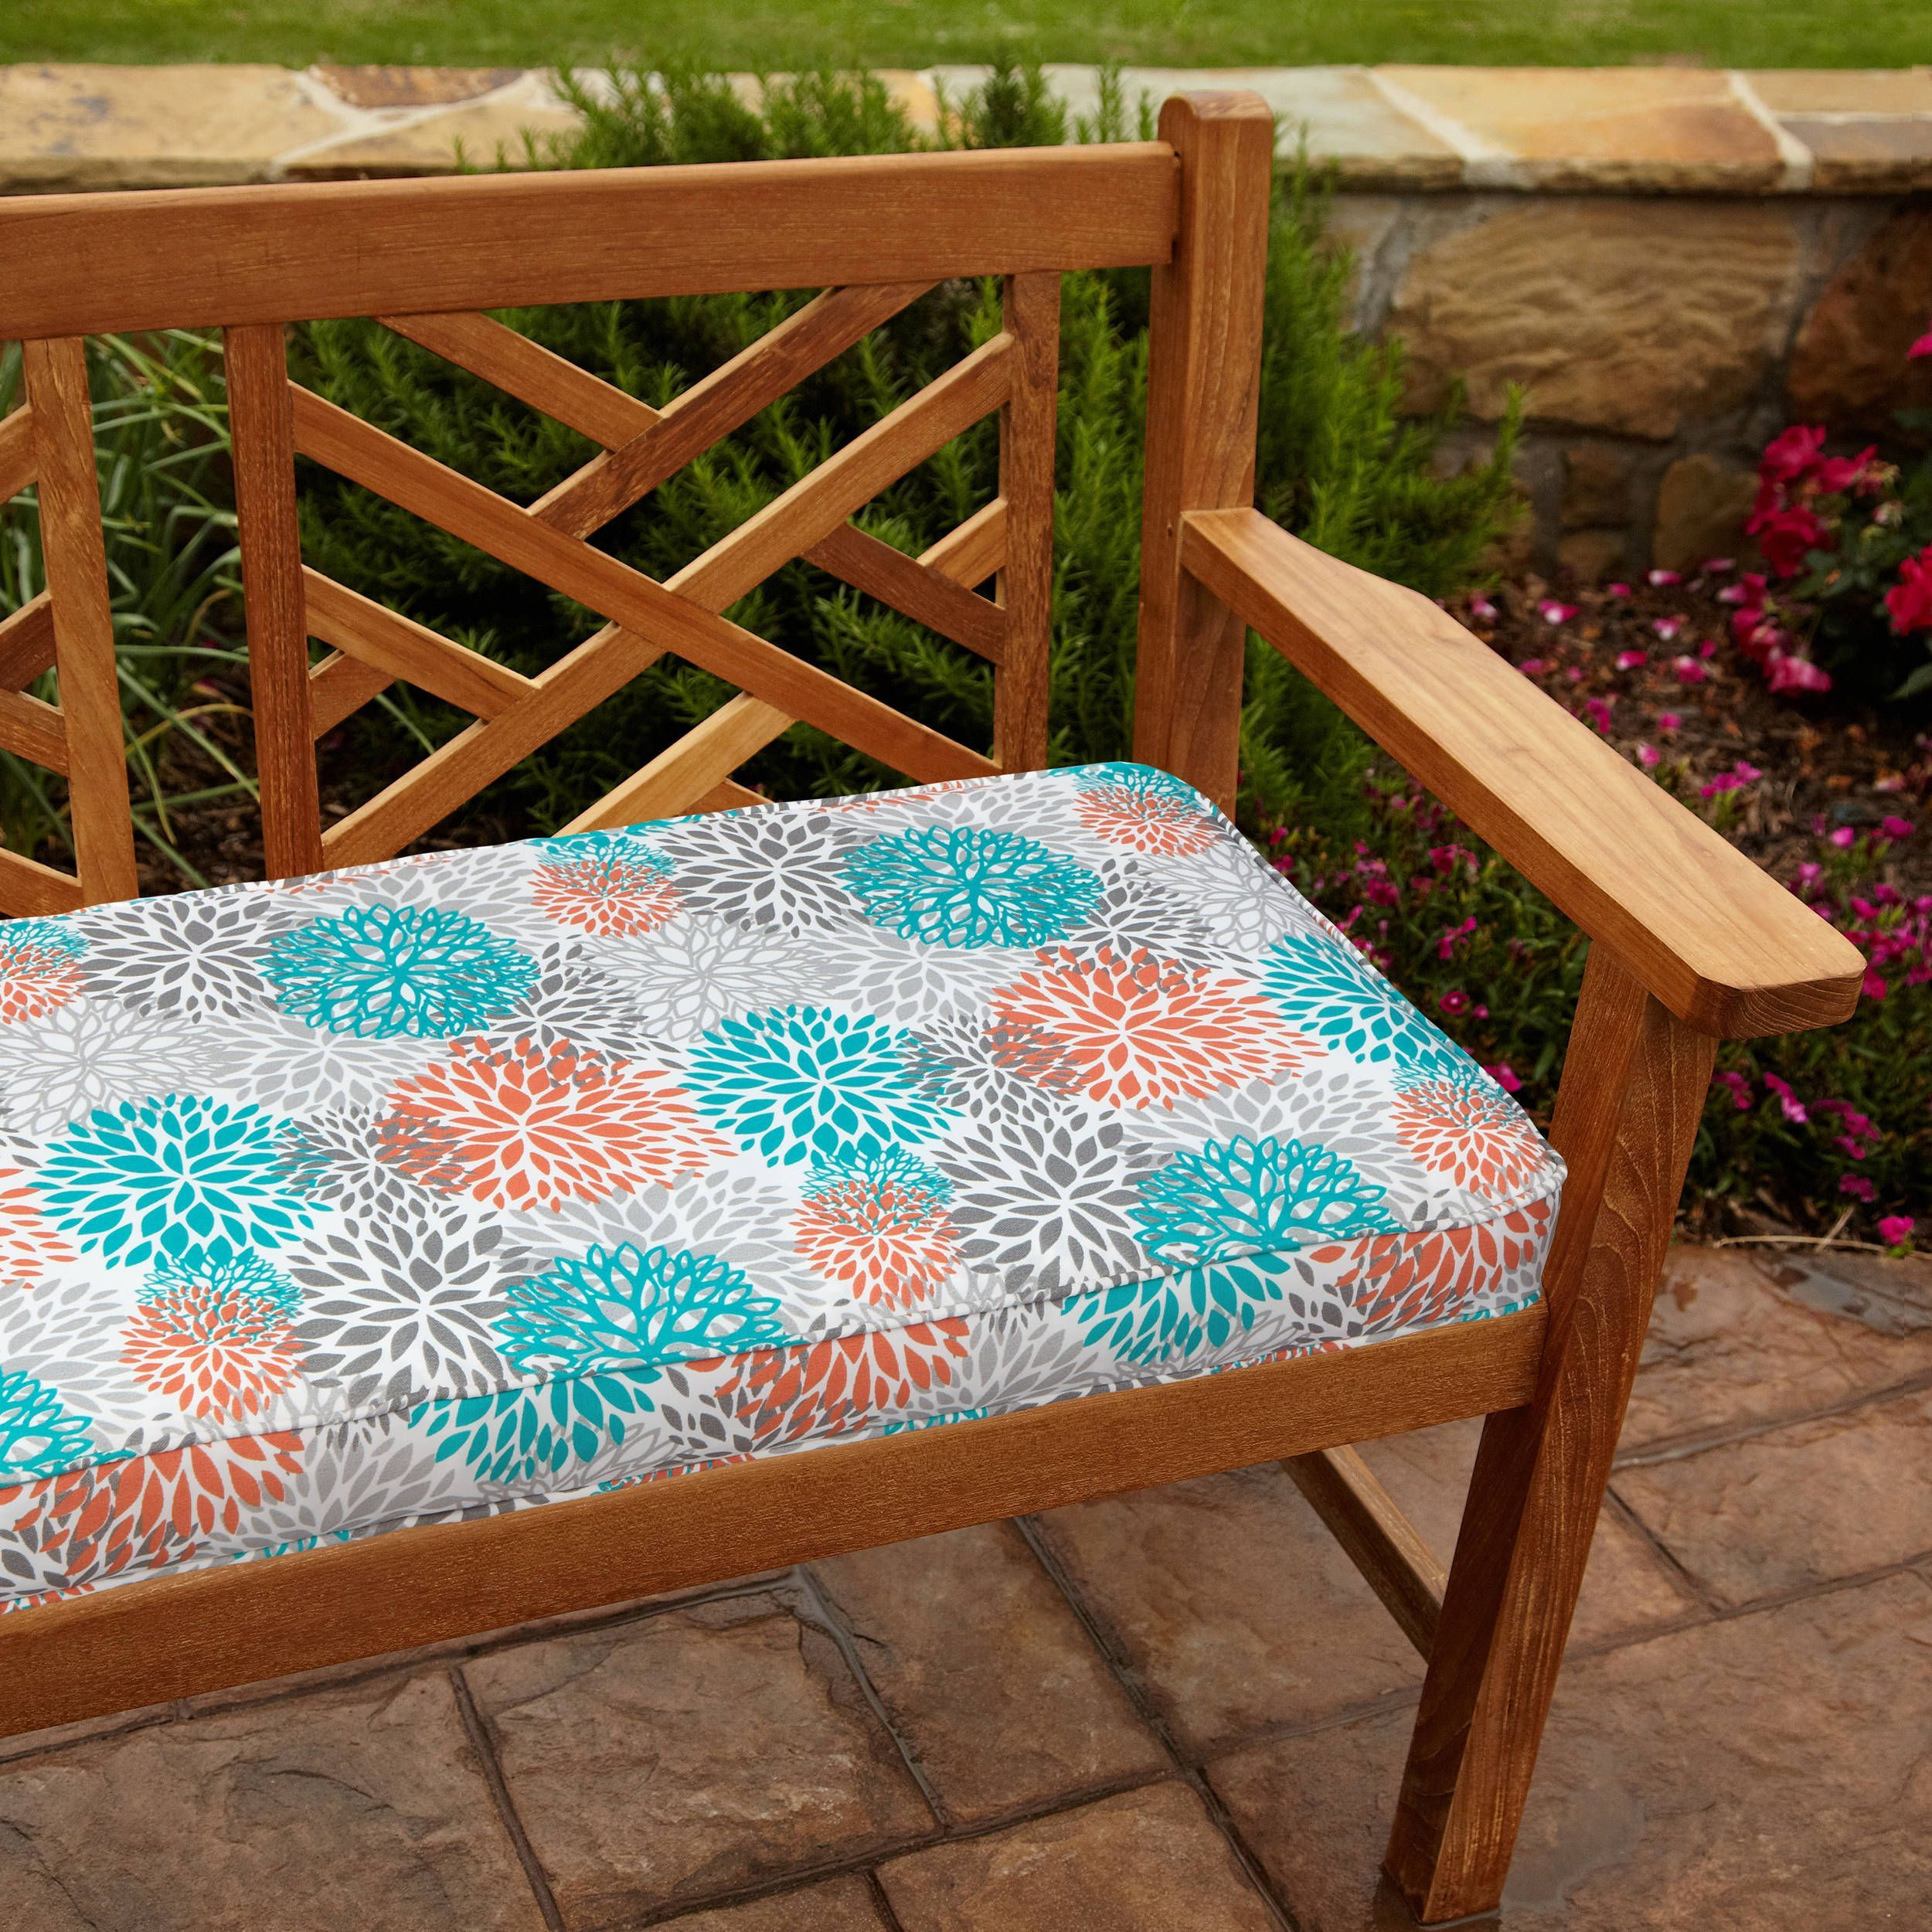 Tropic Bloom 48 inch Outdoor Bench Cushion Tropic Bloom 48 inch